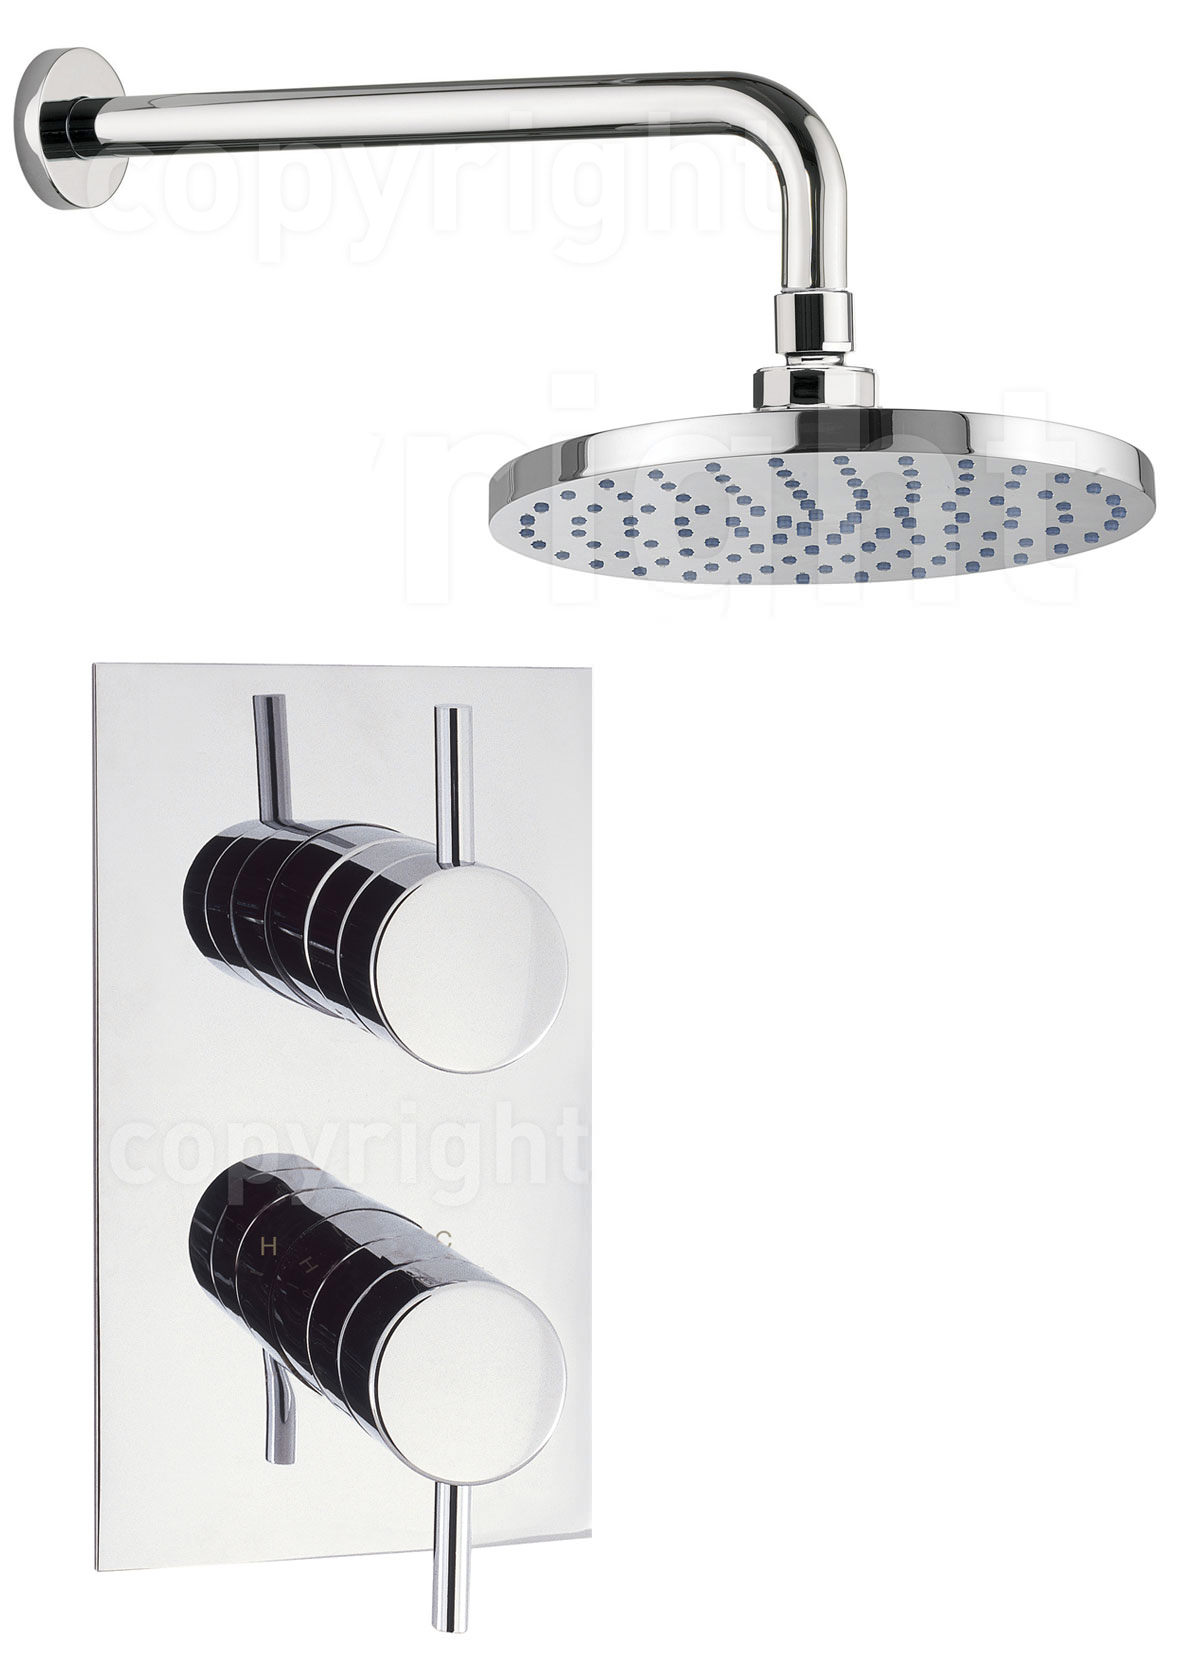 Crosswater Kai Lever Thermostatic Concealed Valve With Shower Head ...